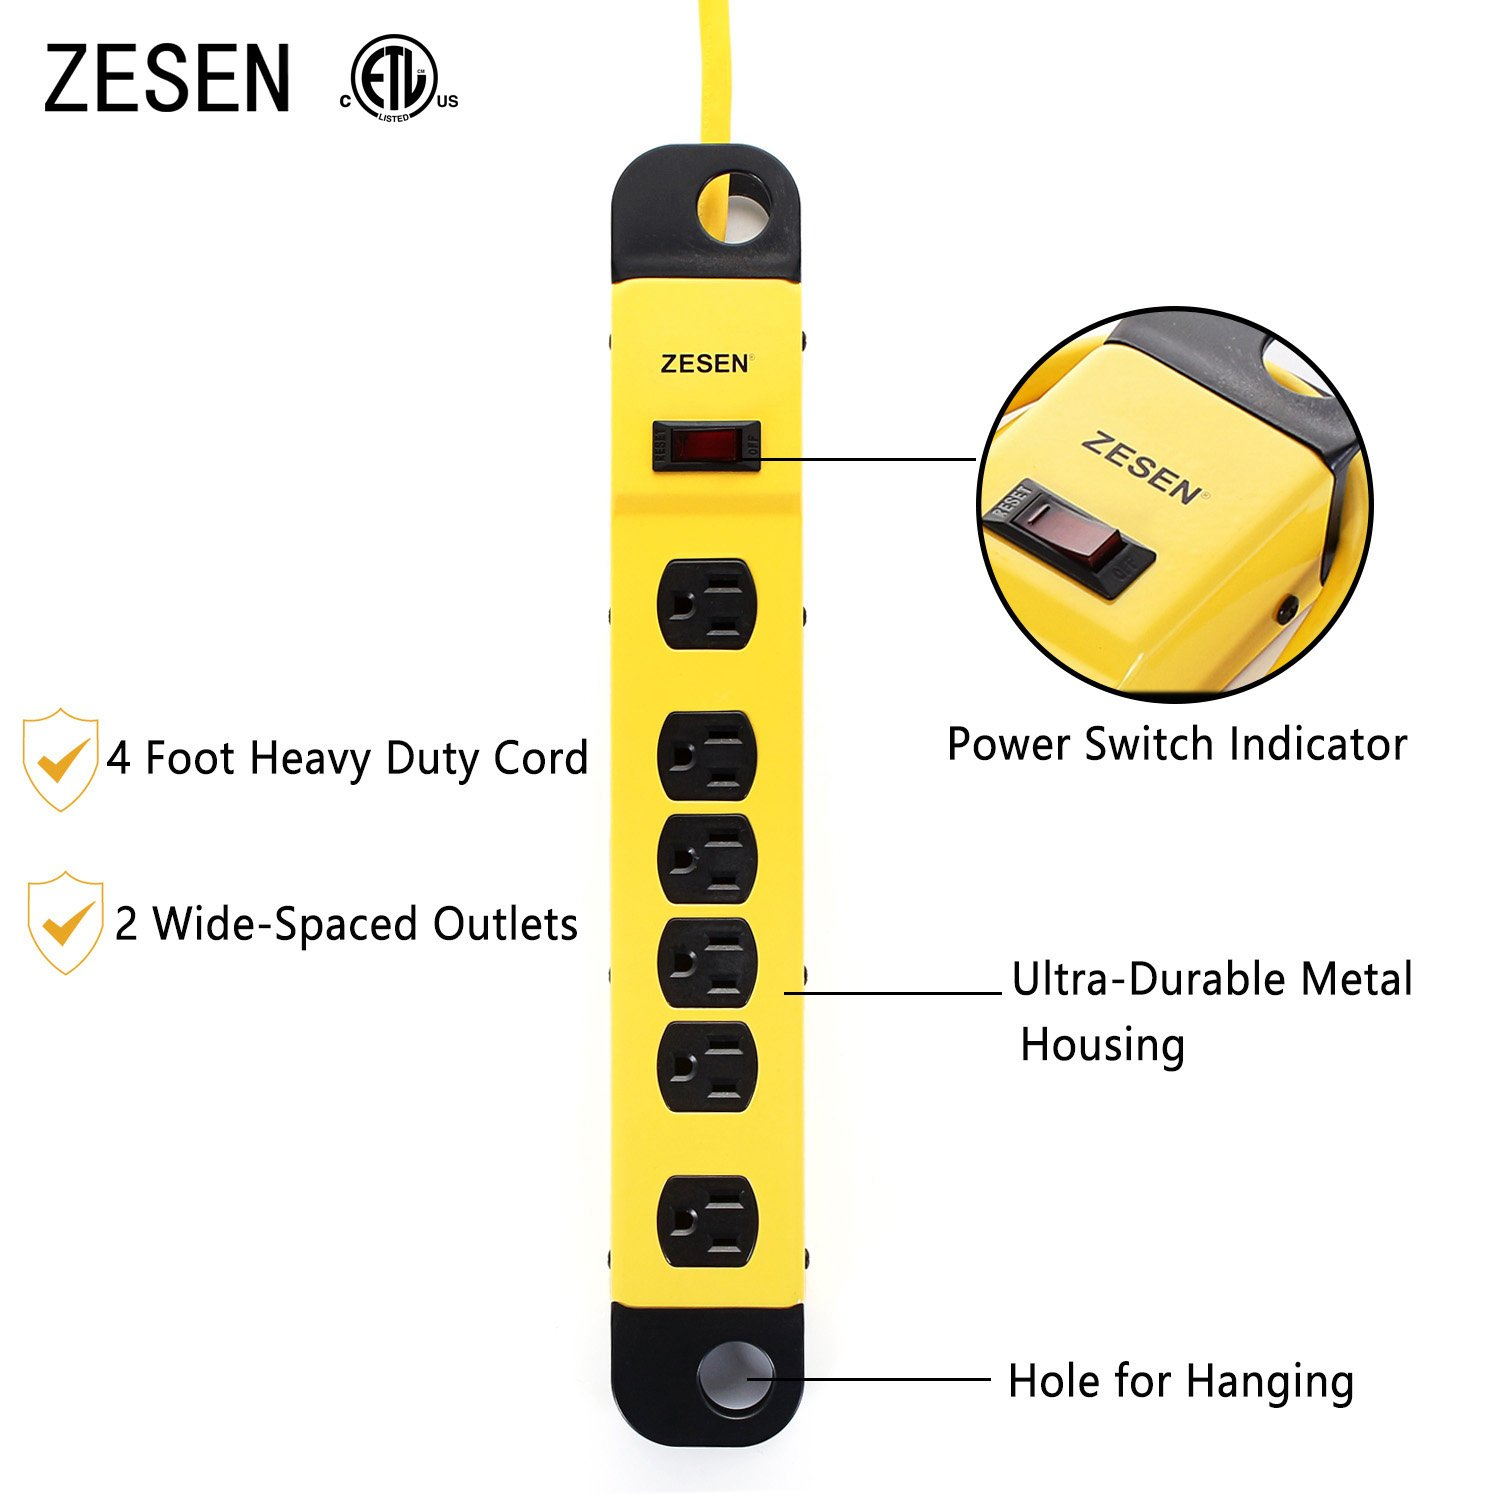 ZESEN 6 Outlet Heavy Duty Metal Workshop Surge Protector Power Strip with Cord Management, 4-Foot Cord, ETL Listed